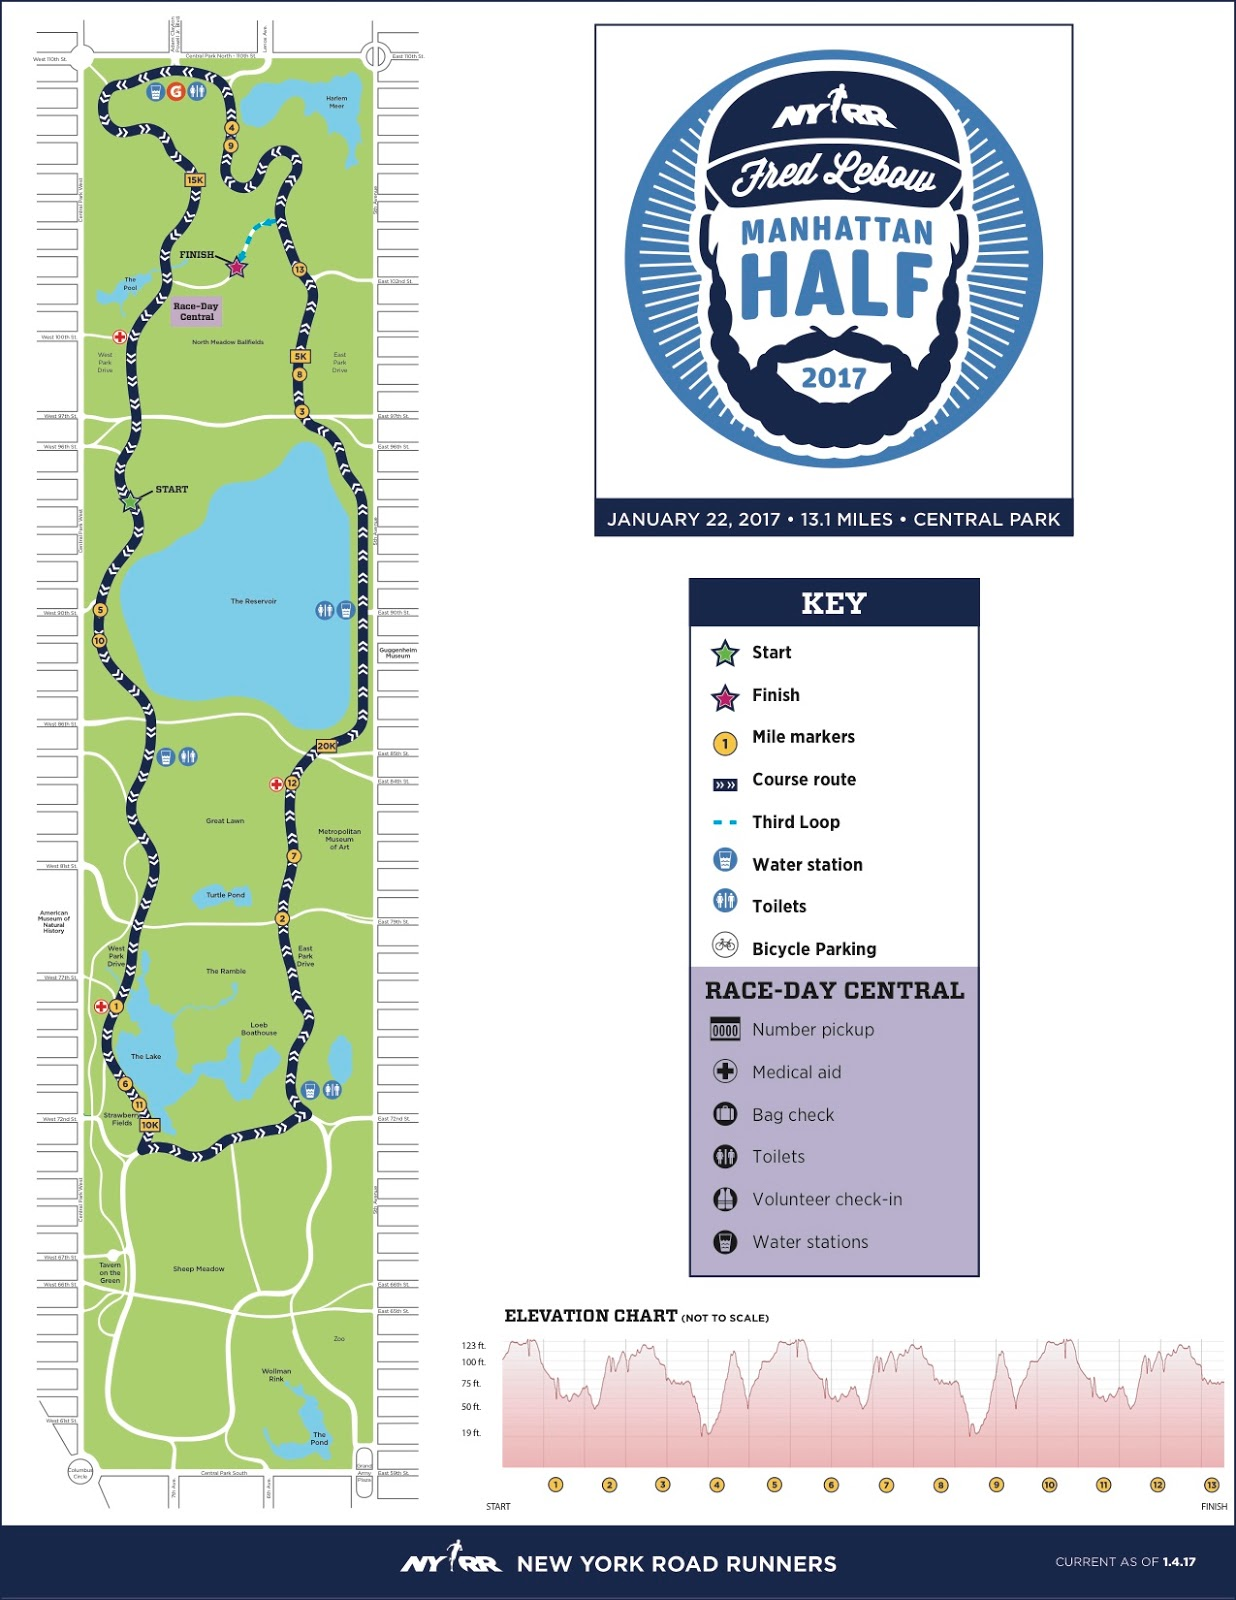 Map Of New York Half Marathon.Fred Lebow Marathon And Half Race Results Central Park Ny 1 20